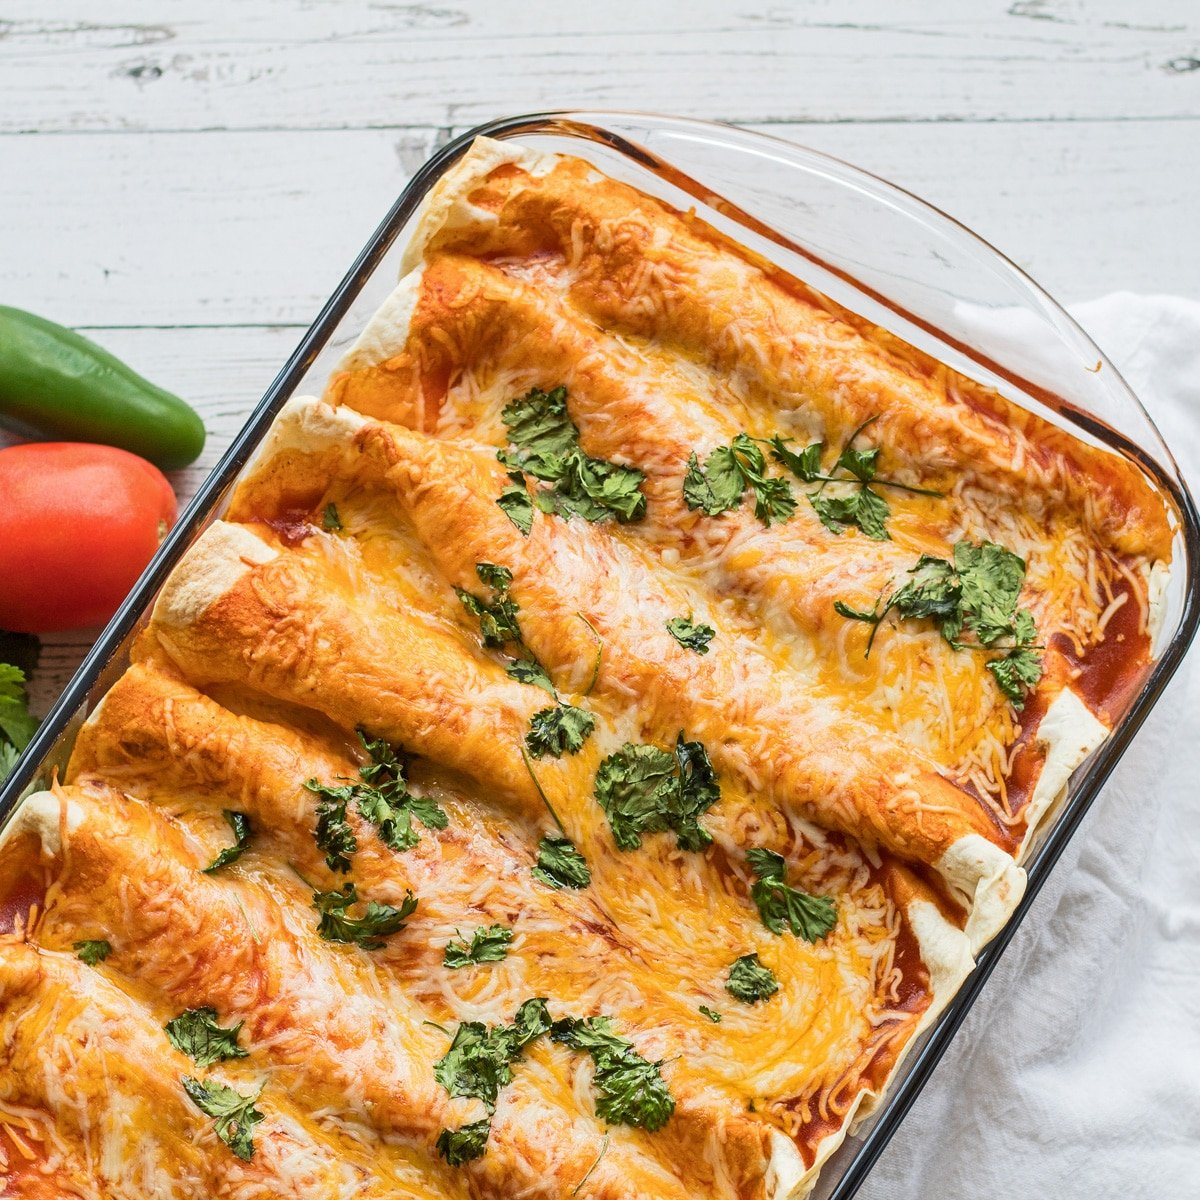 What-To-Serve-With-Enchiladas-best-side-dishes-for-dinner.